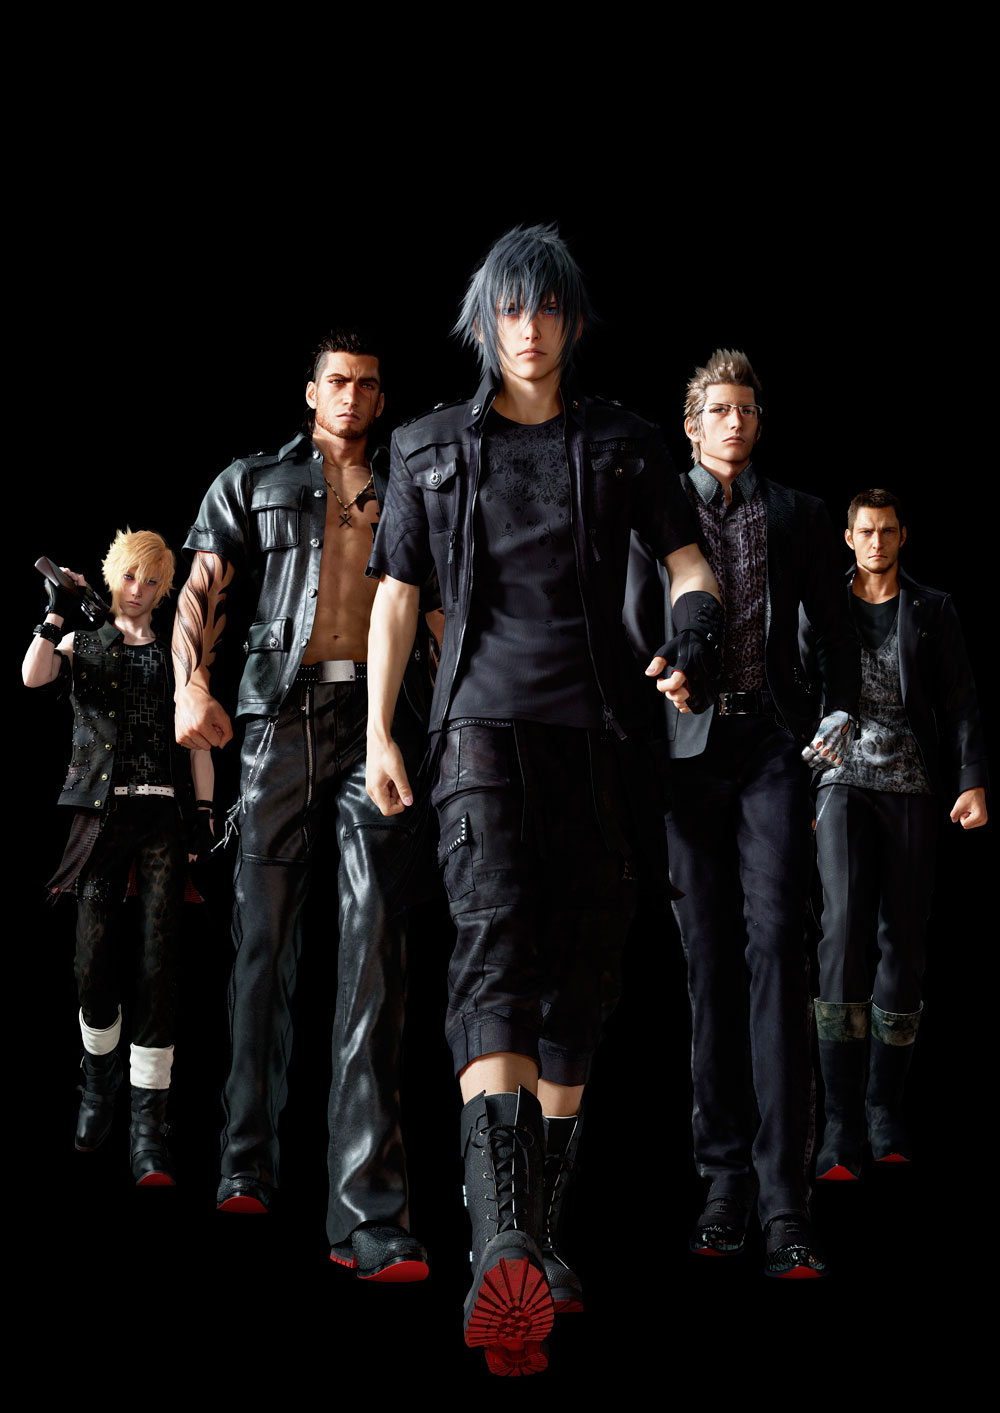 Final-Fantasy-XV-Main-Cast-CG.jpg